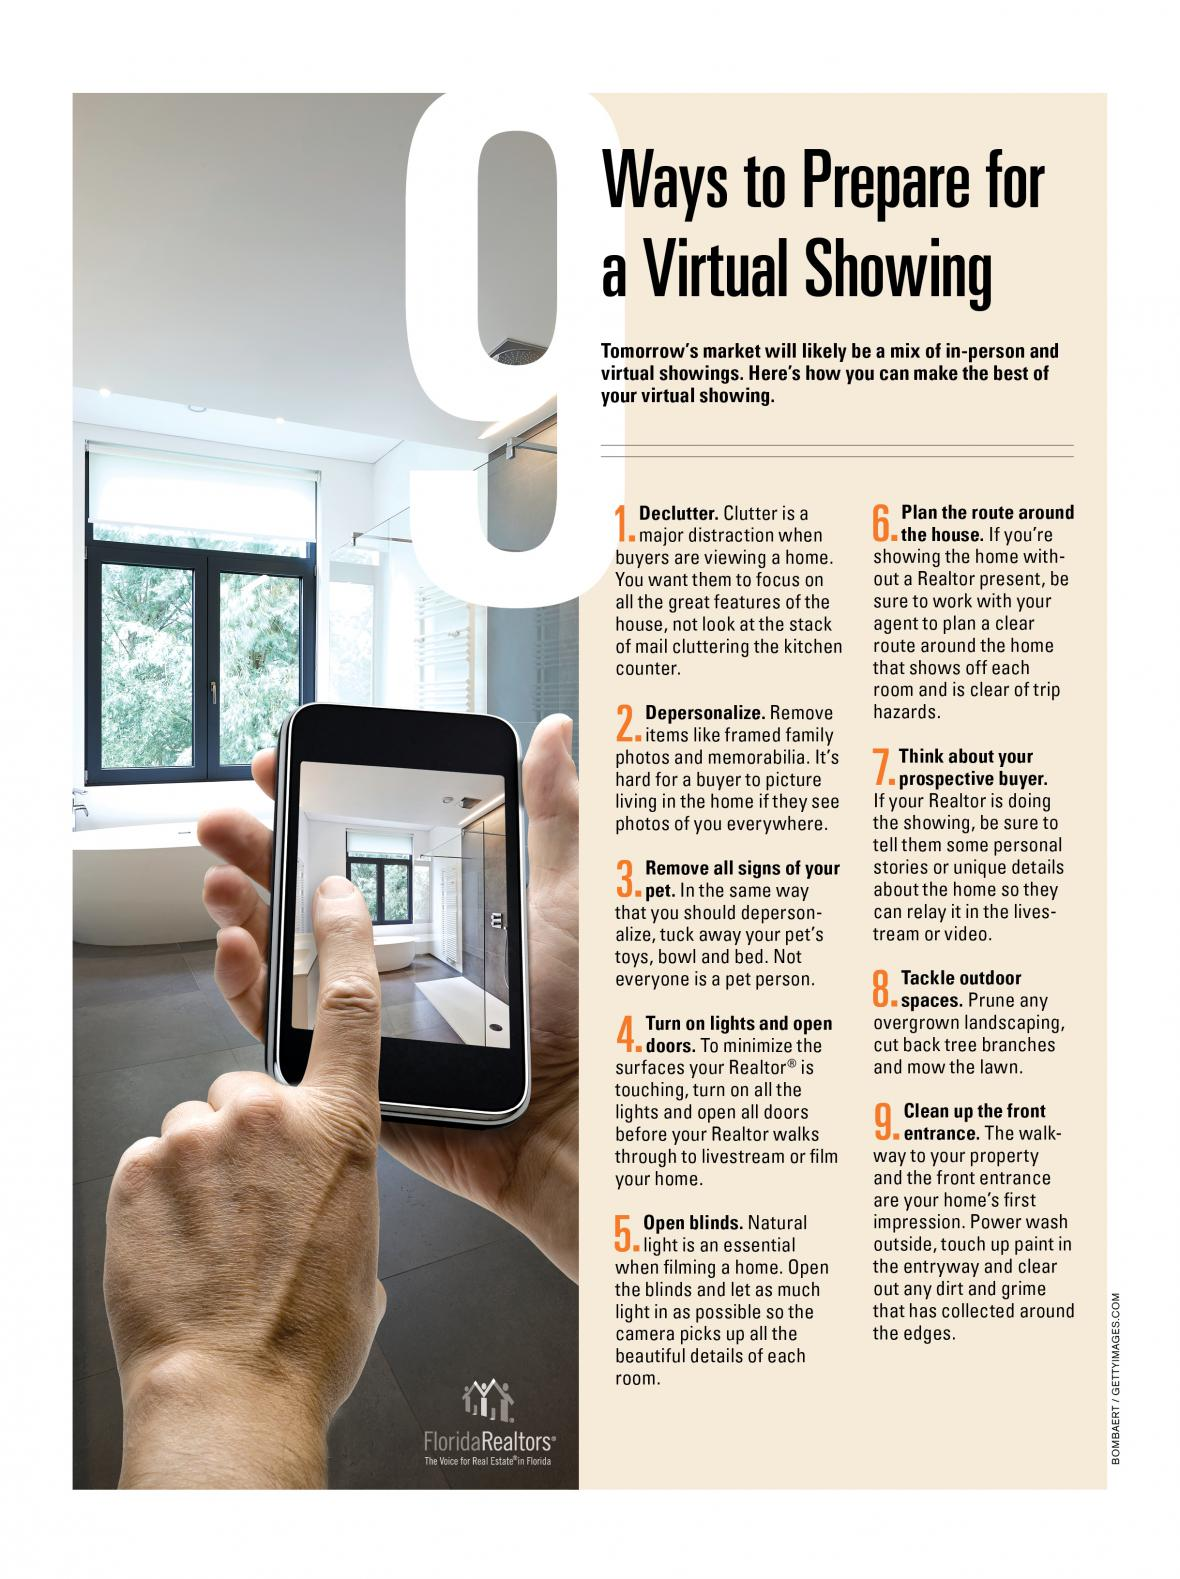 9 Ways to Prepare for a Virtual Showing infographic